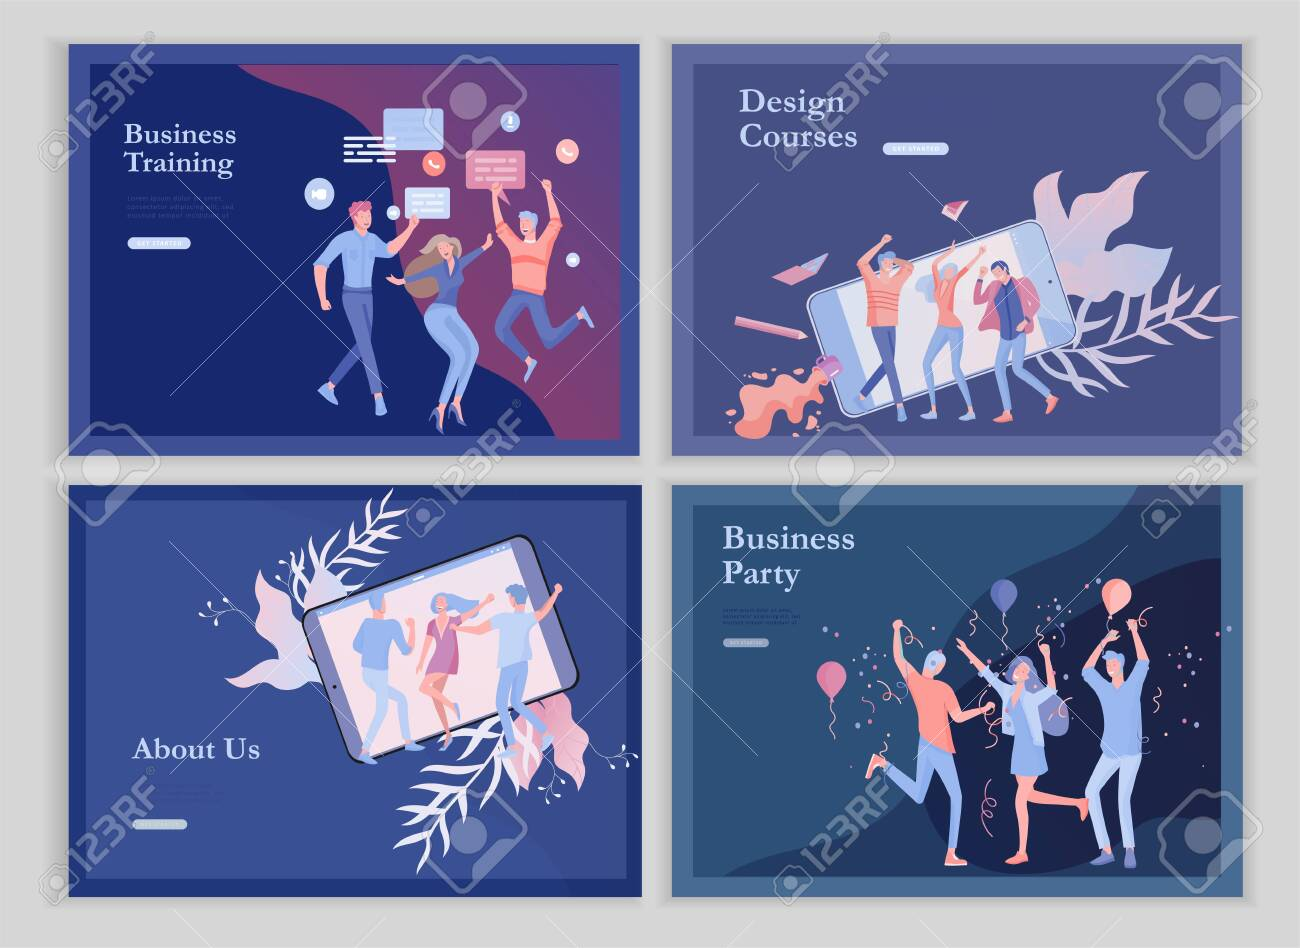 landing page templates set with team People moving. Business invitation and corporate party, design training courses, about us, expert team, happy teamwork. Flat characters design illustration - 124031420